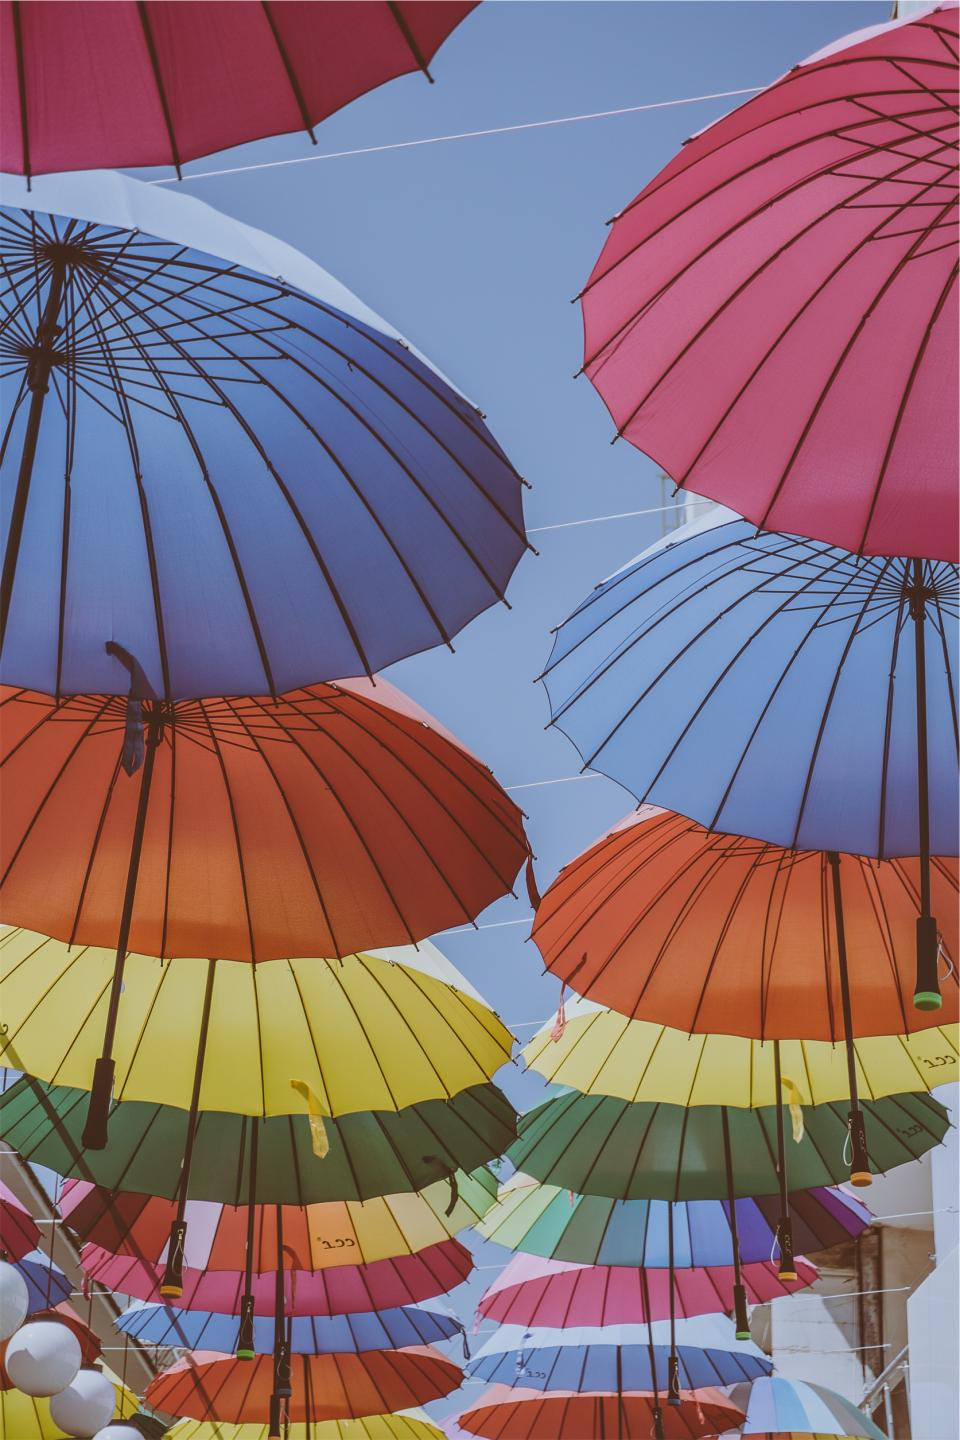 Free stock photo of umbrellas colors